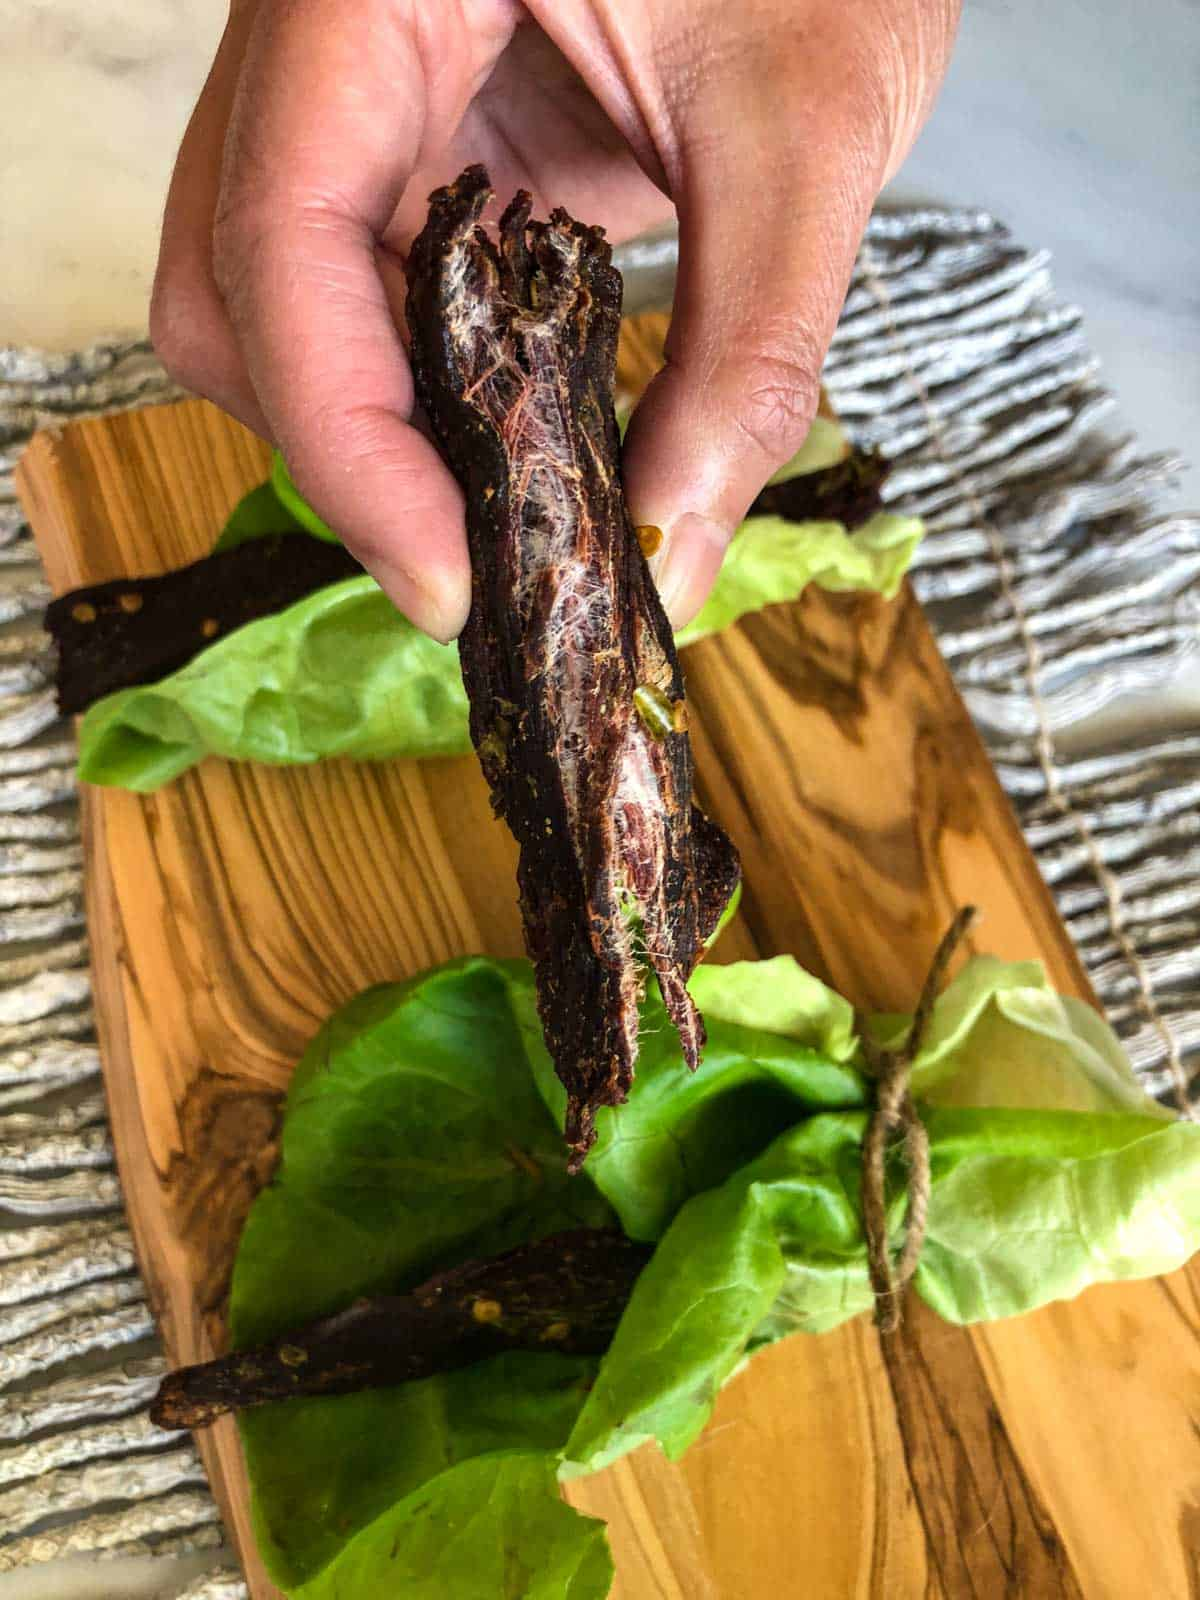 Deer jerky ripped in half showing it's finished with cutting board in background